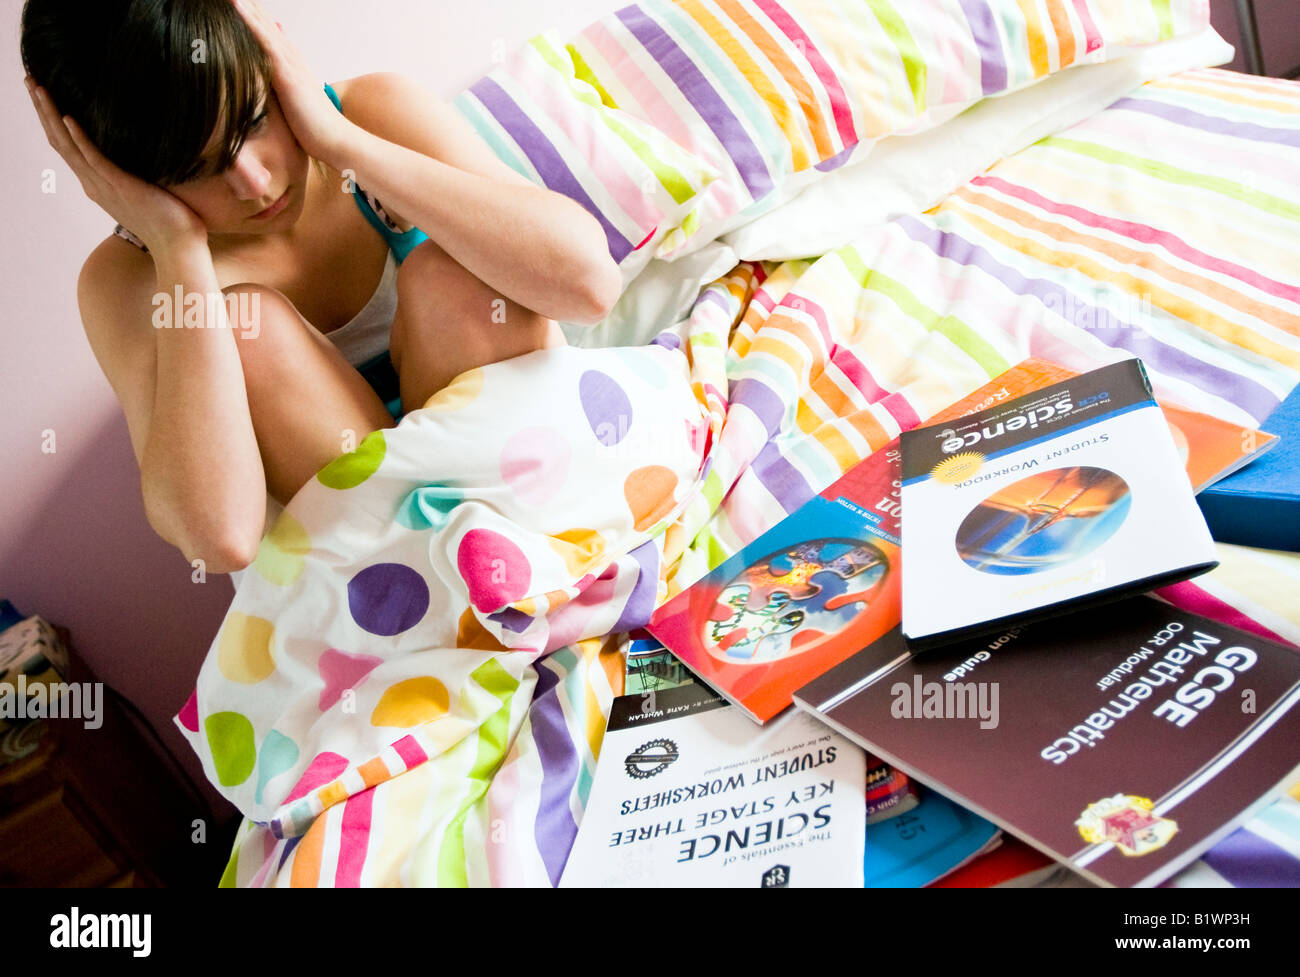 teenage girl in bed with GCSE revision books around her looking anxious - Stock Image